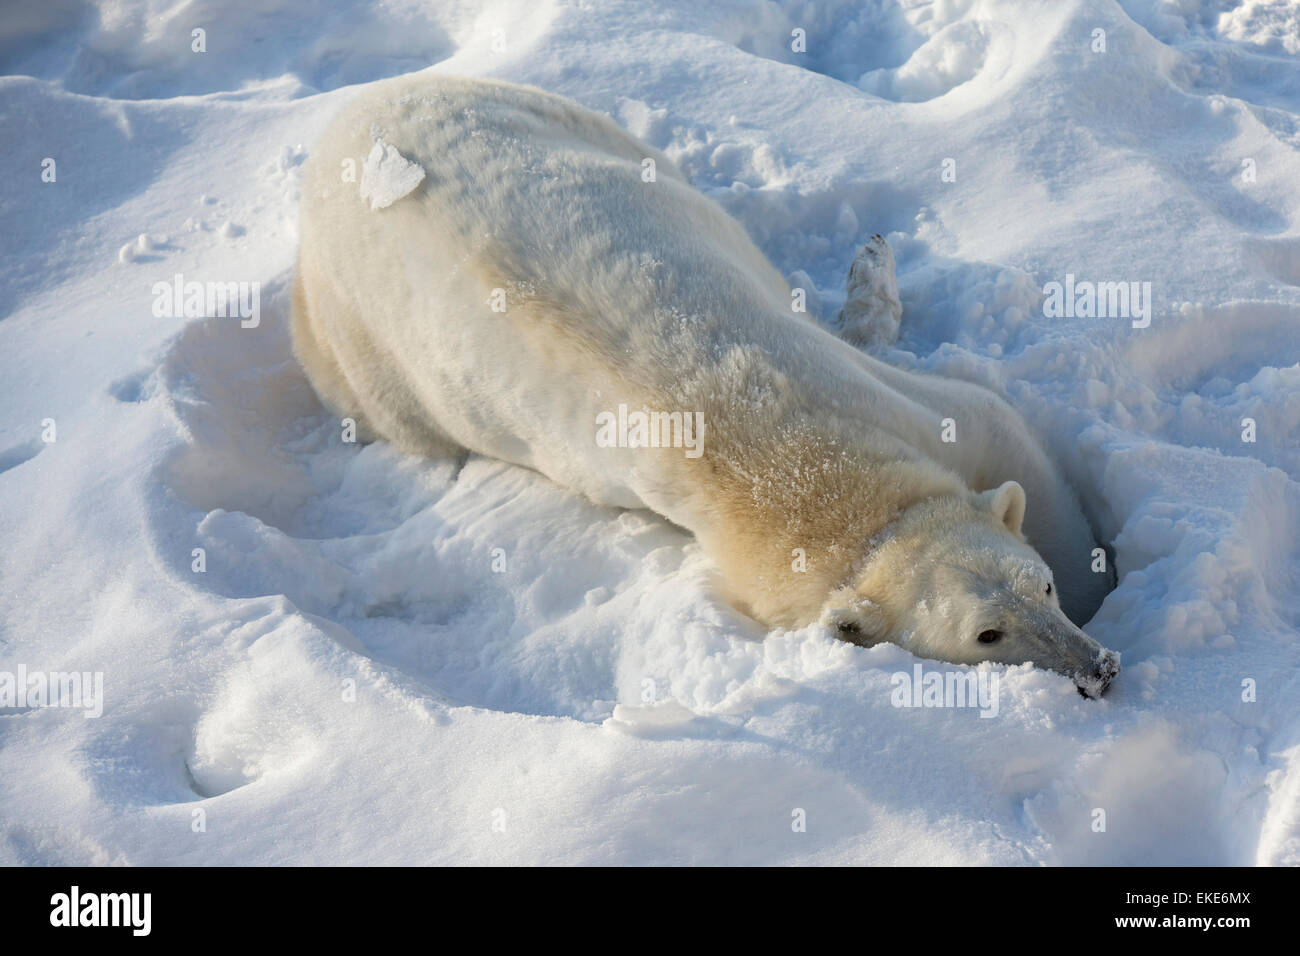 Polar bear (Ursus maritimus) female cleaning herself in the snow - Stock Image